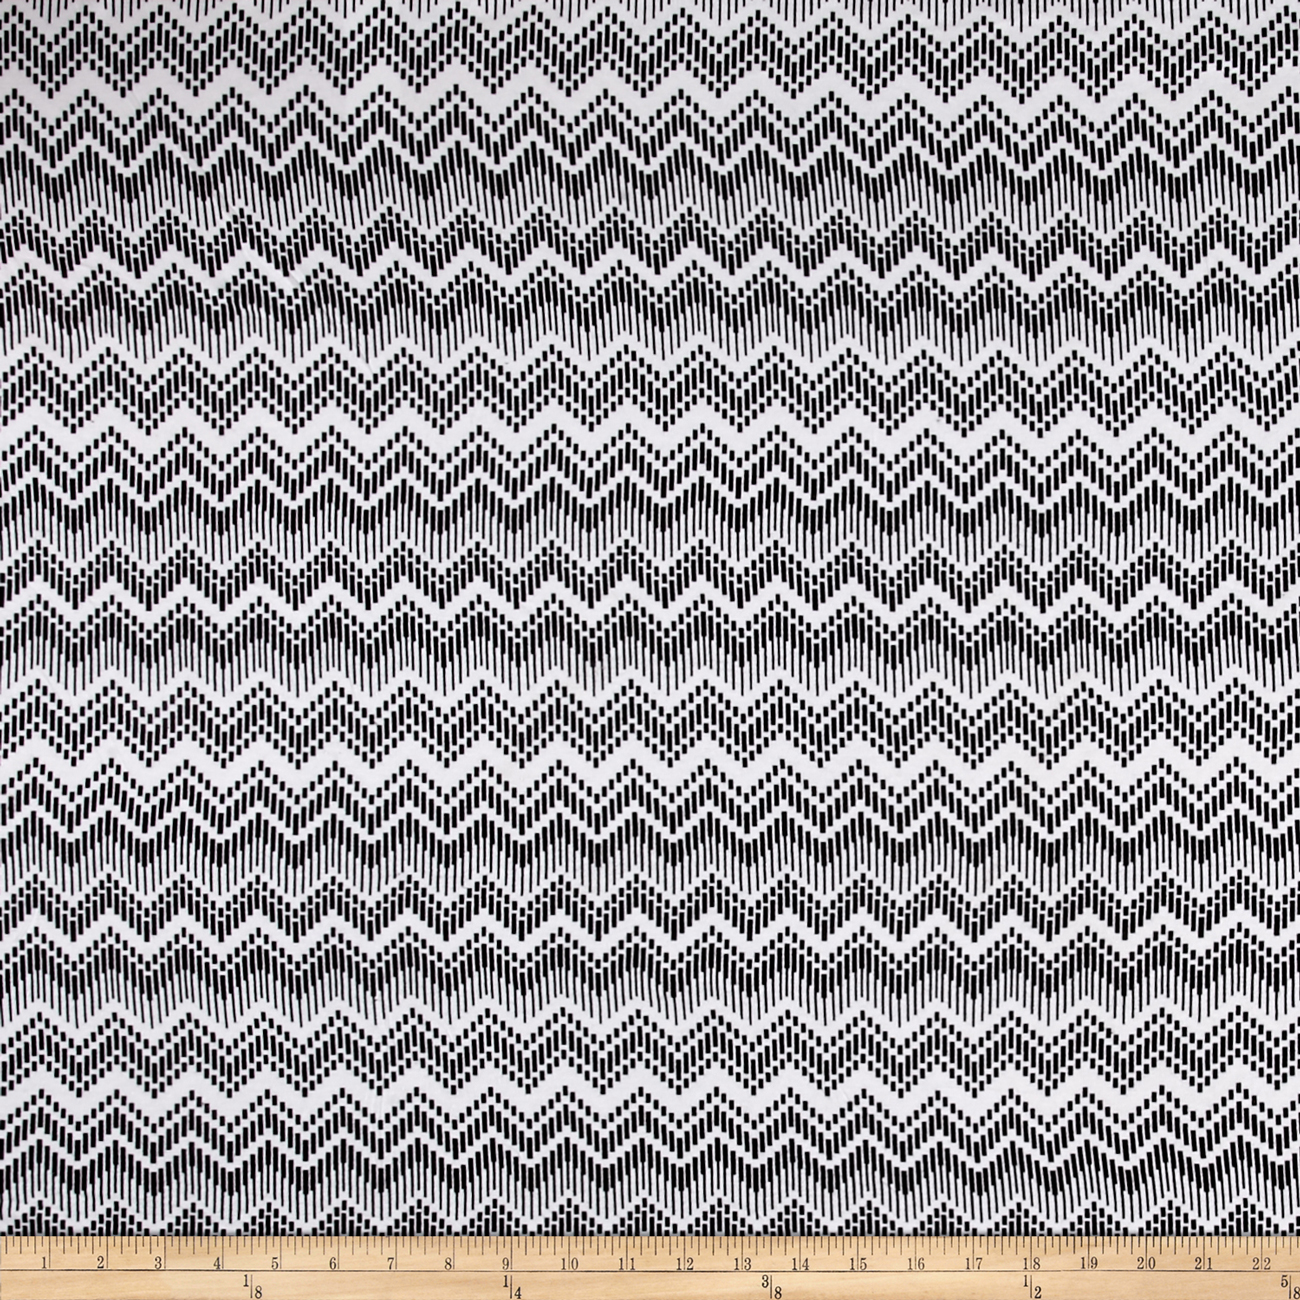 Abstract Chevron Jersey Knit Black White Fabric by E.Z Fabric in USA